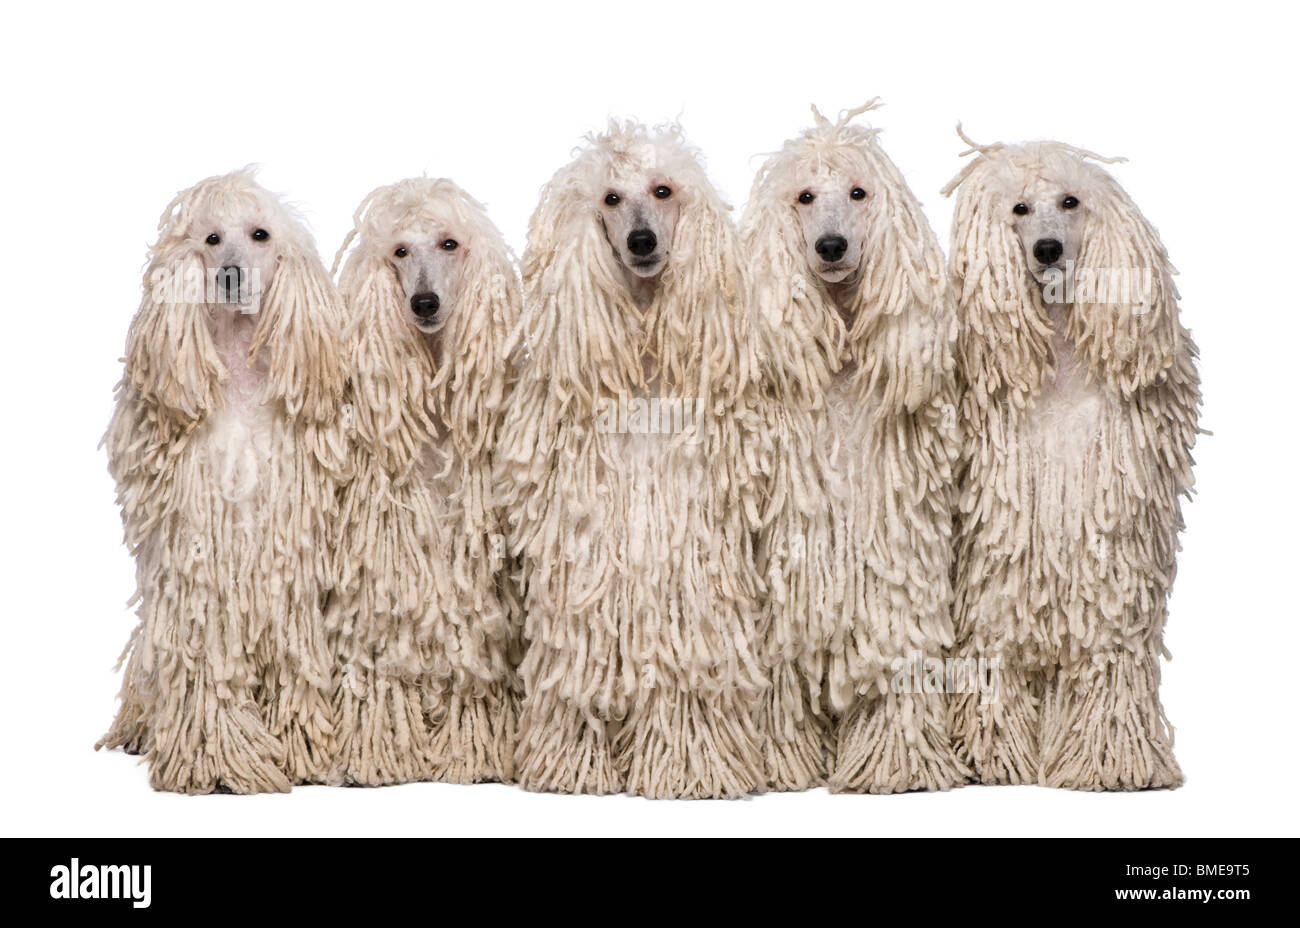 Five White Corded Standard Poodles sitting in front of white background - Stock Image